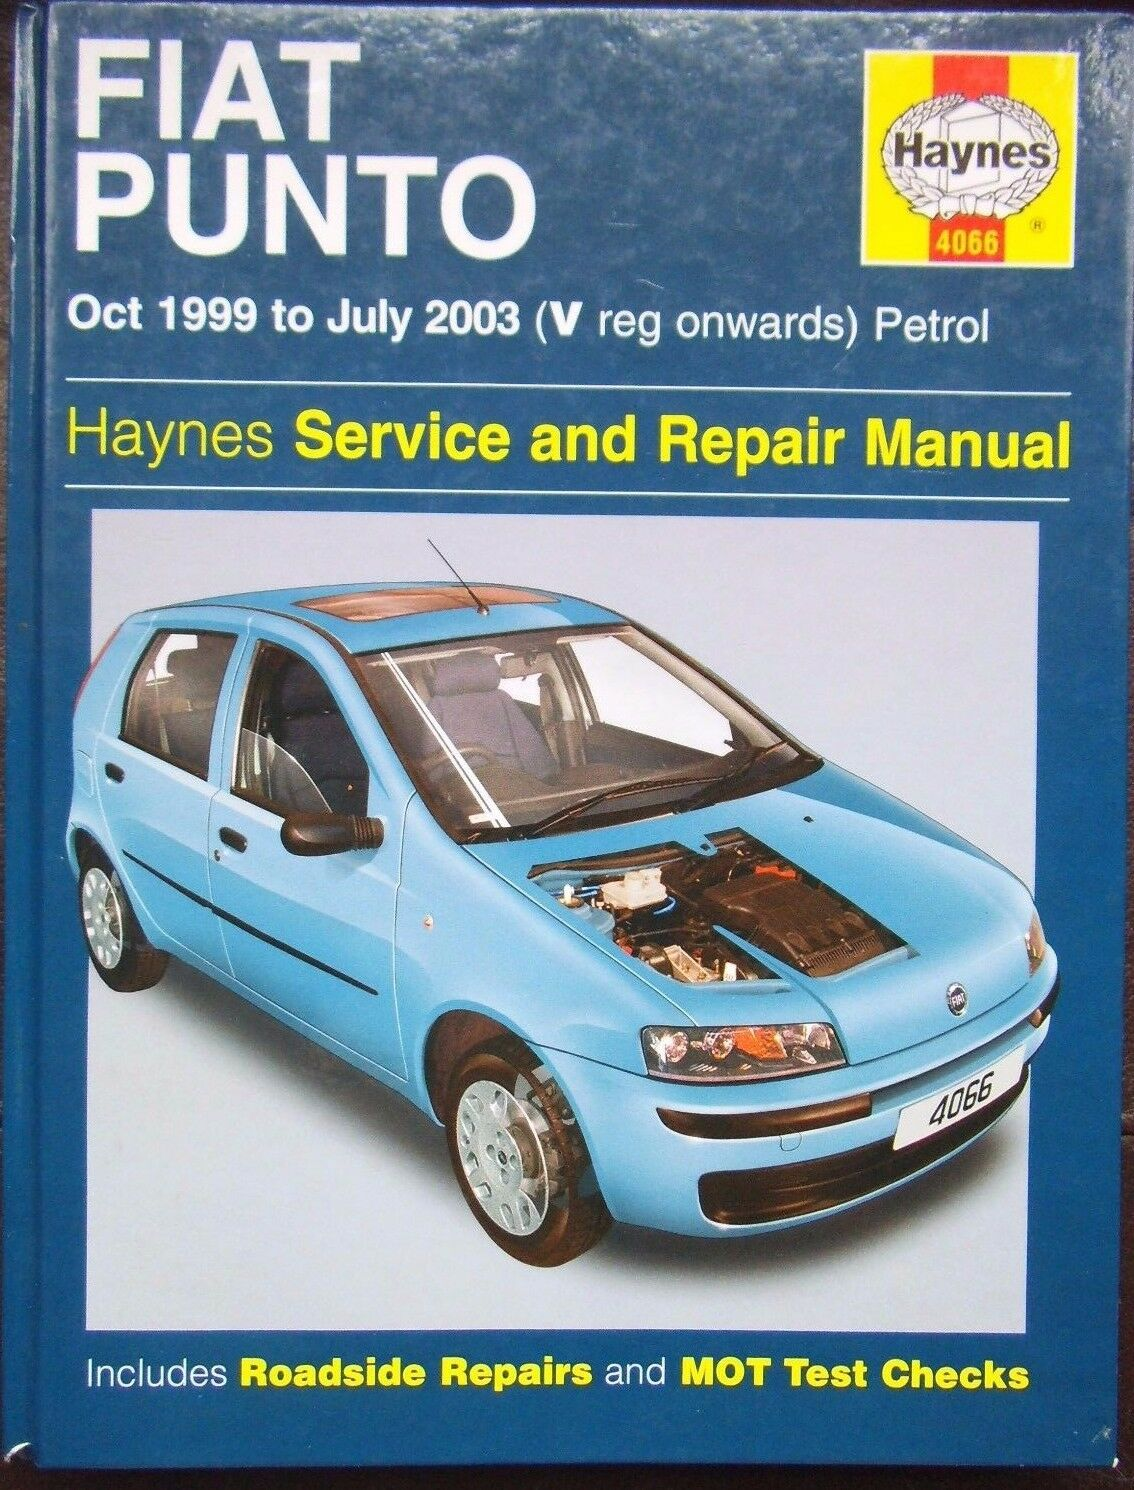 Fiat Punto (Petrol) Haynes Workshop Manual from 1999 to 2003. 1 of 4FREE  Shipping ...